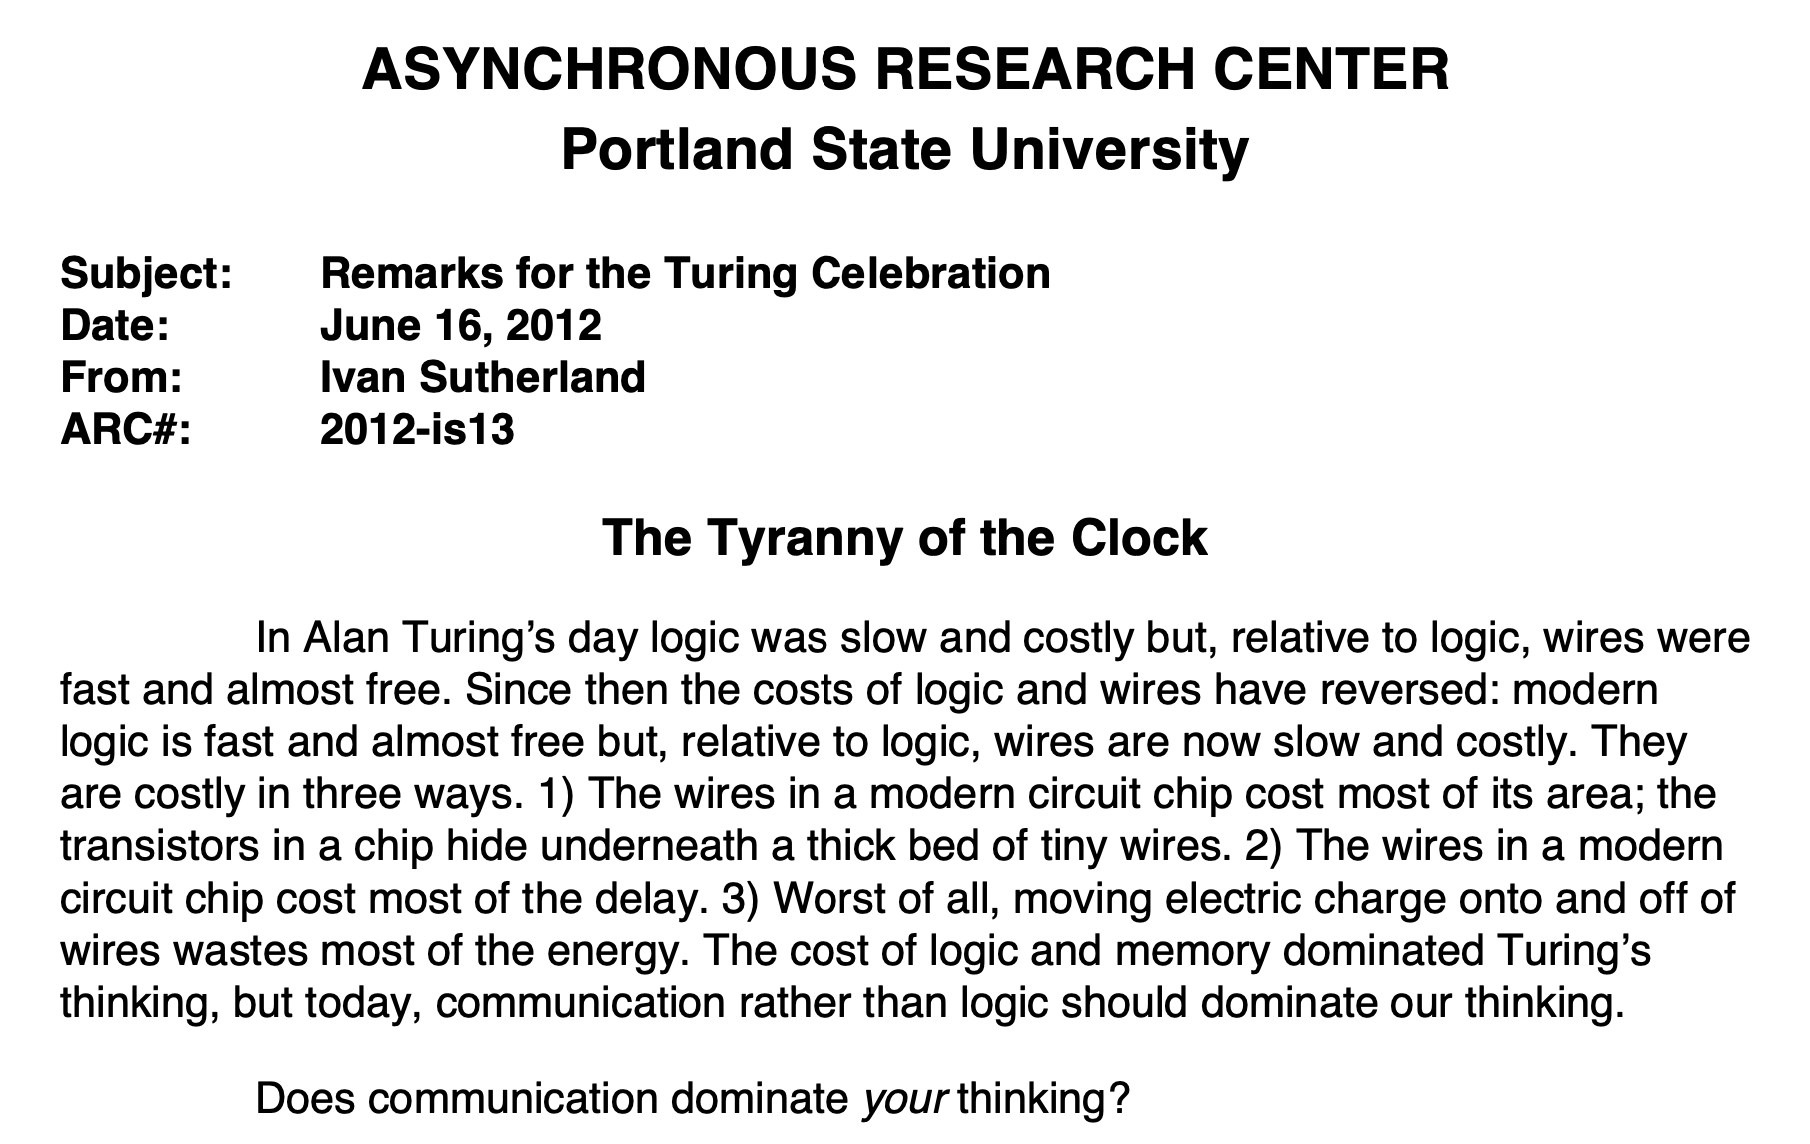 screenshot of first 2 paragraphs. 'The Tyranny of the Clock' In Alan Turing's day logic was slow and costly but, relative to logic, wires were fast and almost free. Since then the costs of logic and wires have reversed... today, communication rather than logic should dominate our thinking. Does communication dominate your thinking?